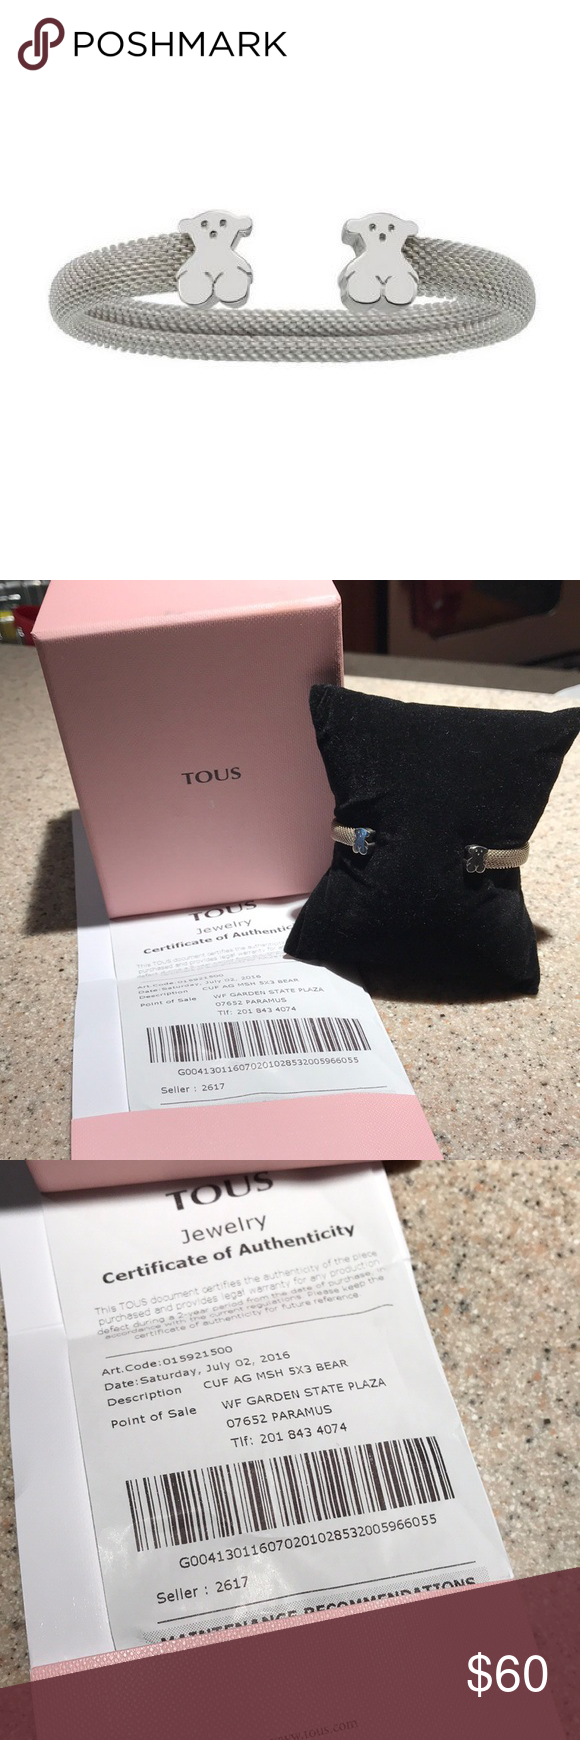 SOLD Tous Silver sweet dolls bracelet boxreceipt Birthday gifts